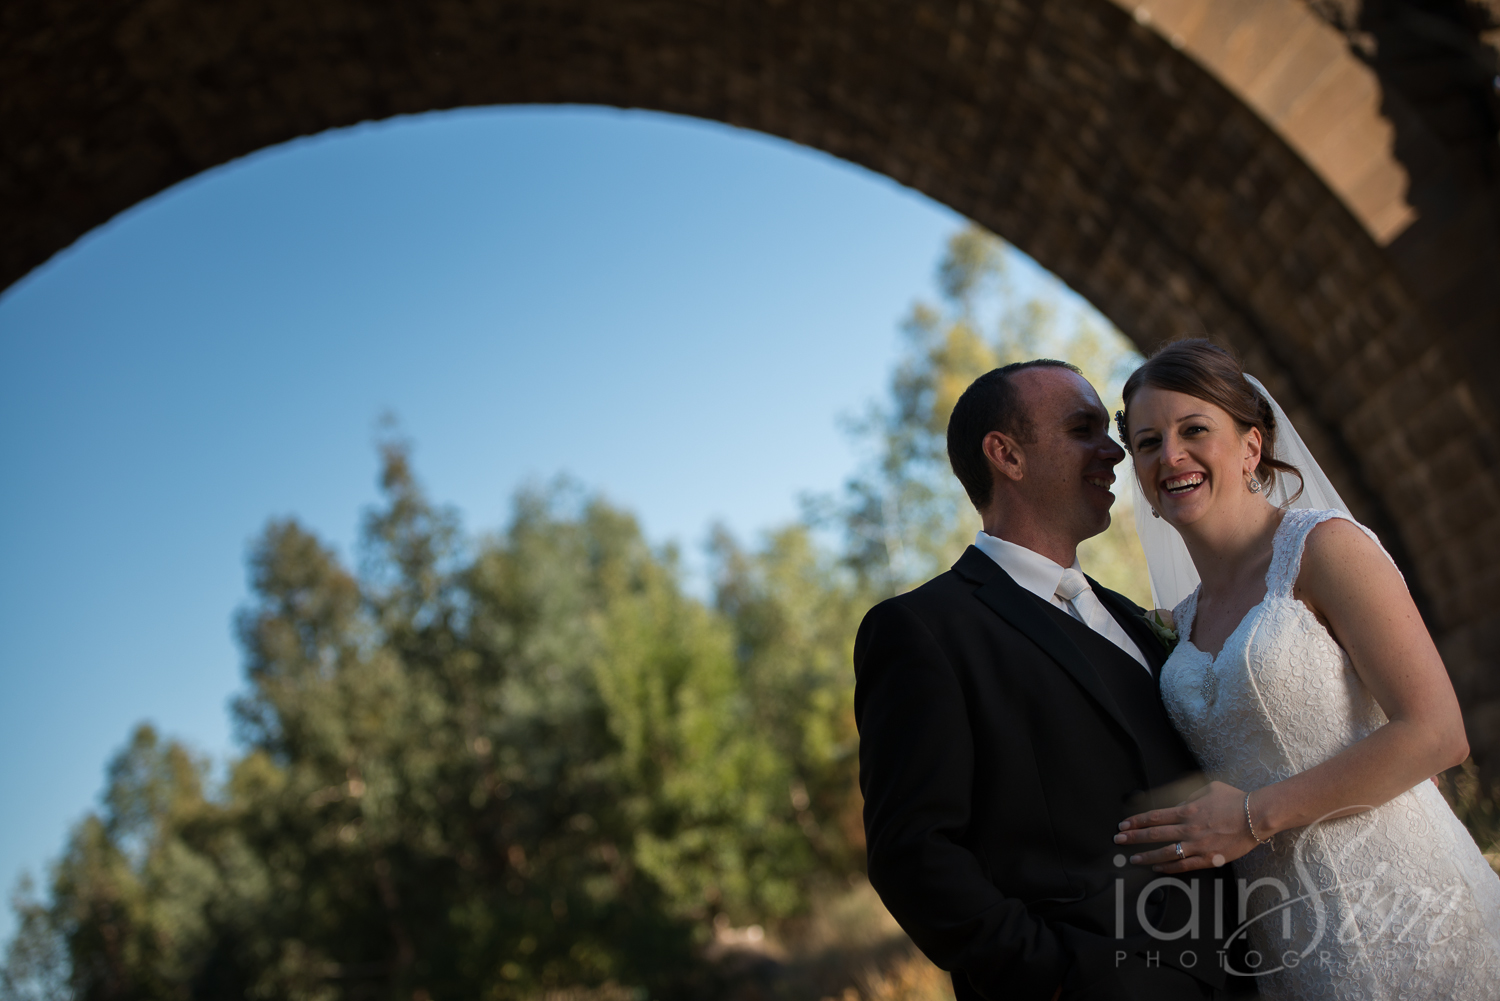 Renee and Davids Gisborne Wedding by Iain Sim Photography